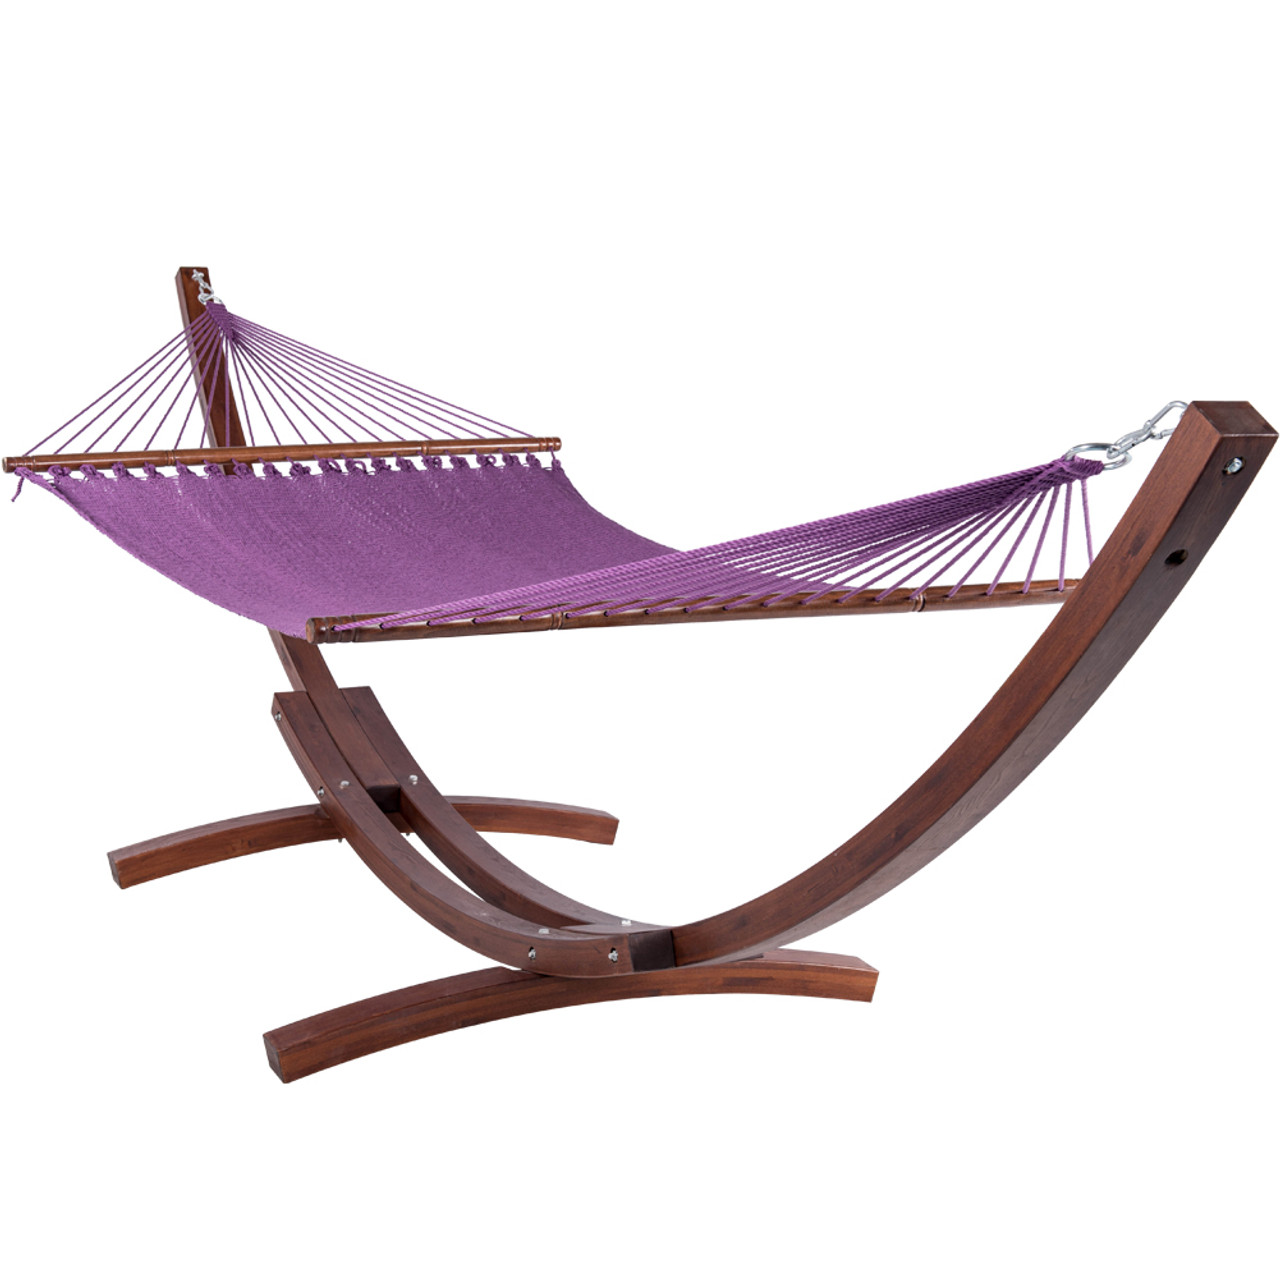 55 Inch Double Caribbean Hammock Hand Woven Polyester Rope Outdoor Handmade  Patio Swing Bed (Purple